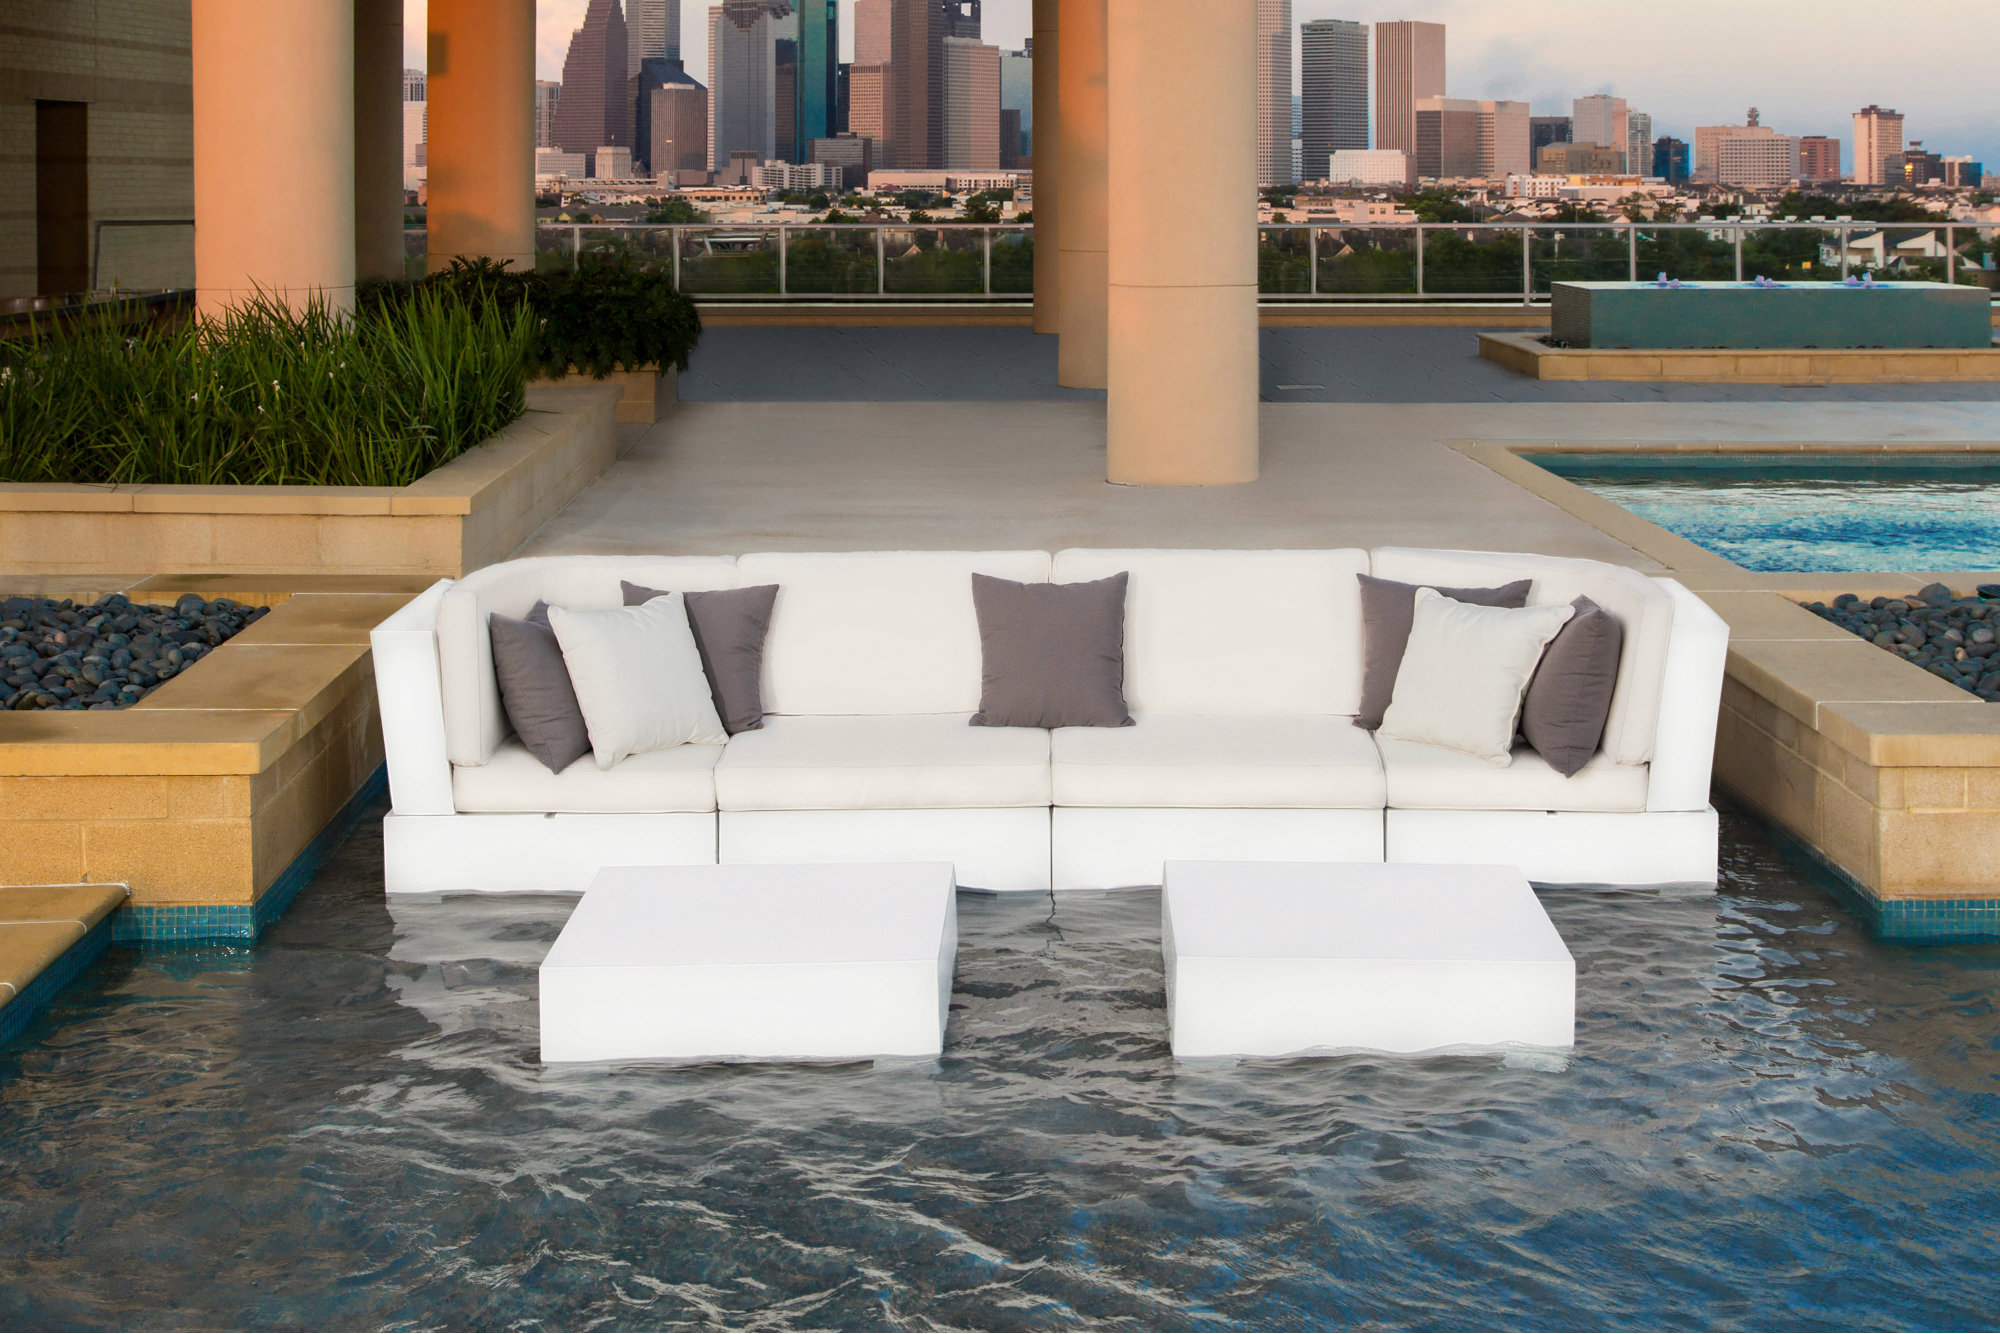 Ledge Lounger Offers Modular Furniture For Swimming Pools Pool Spa News Products